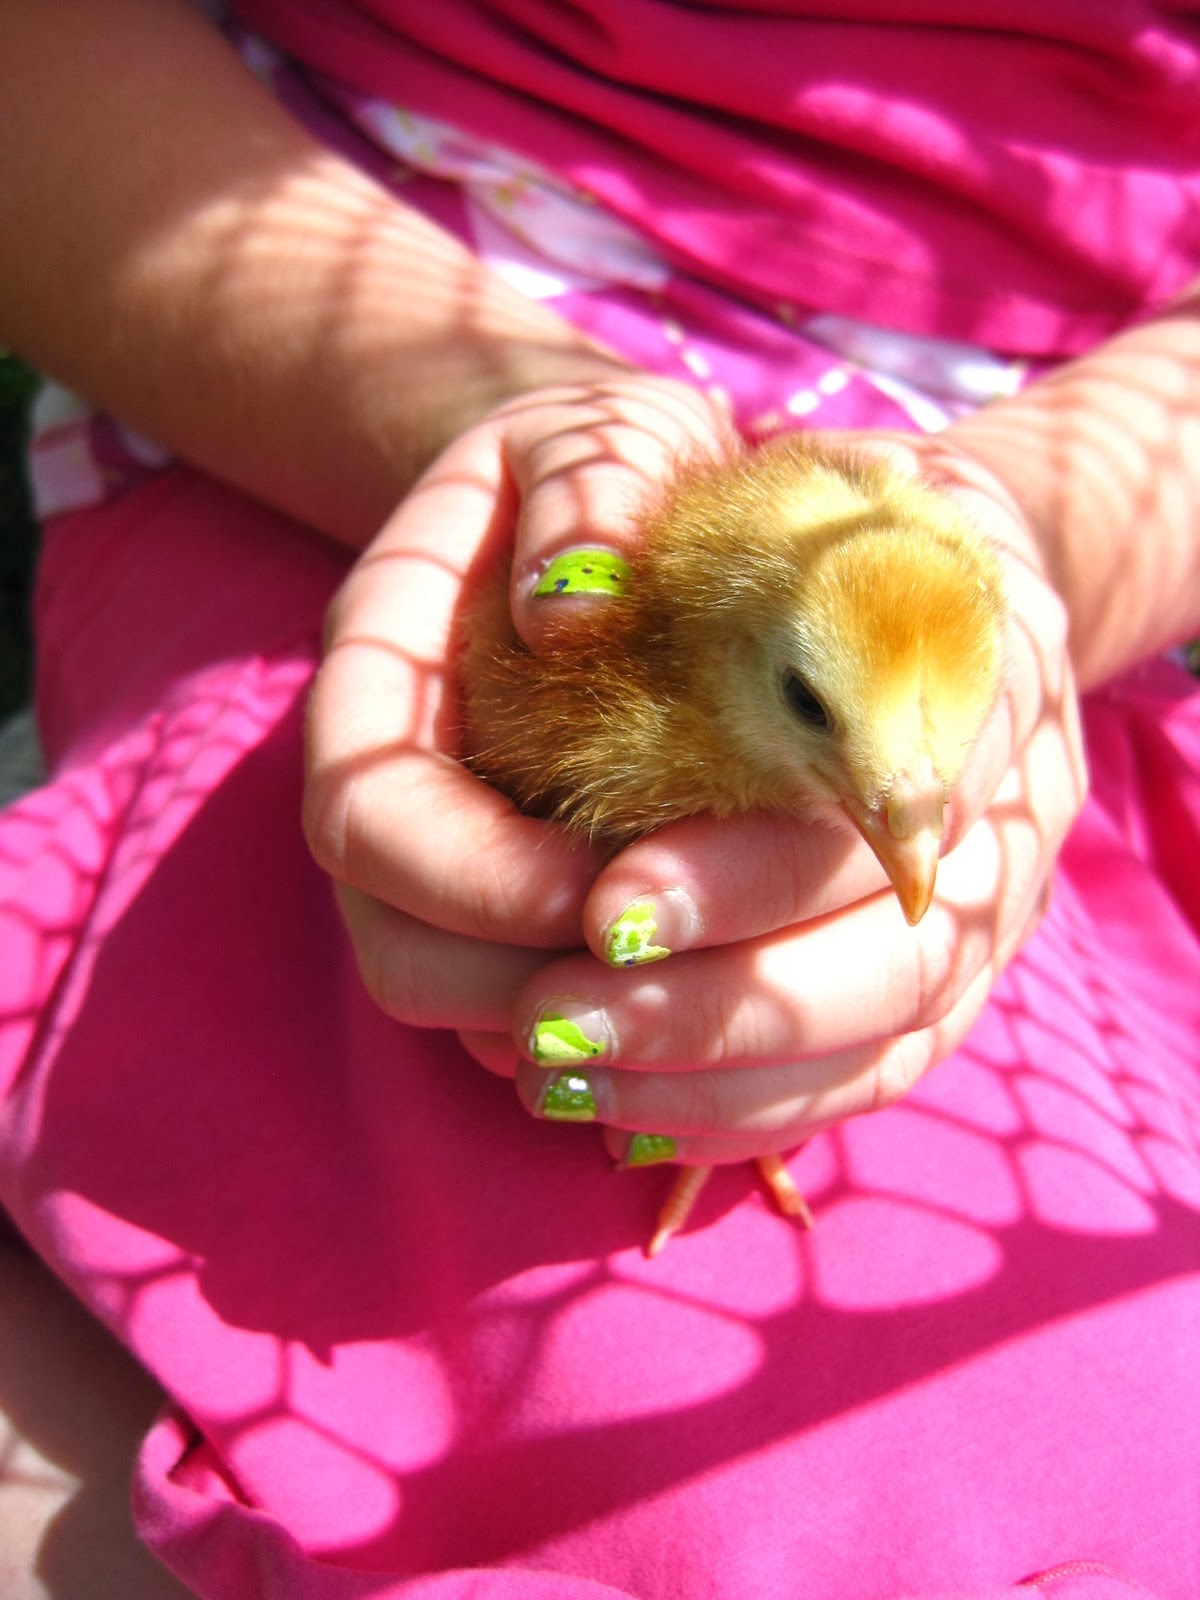 Our Chicks!